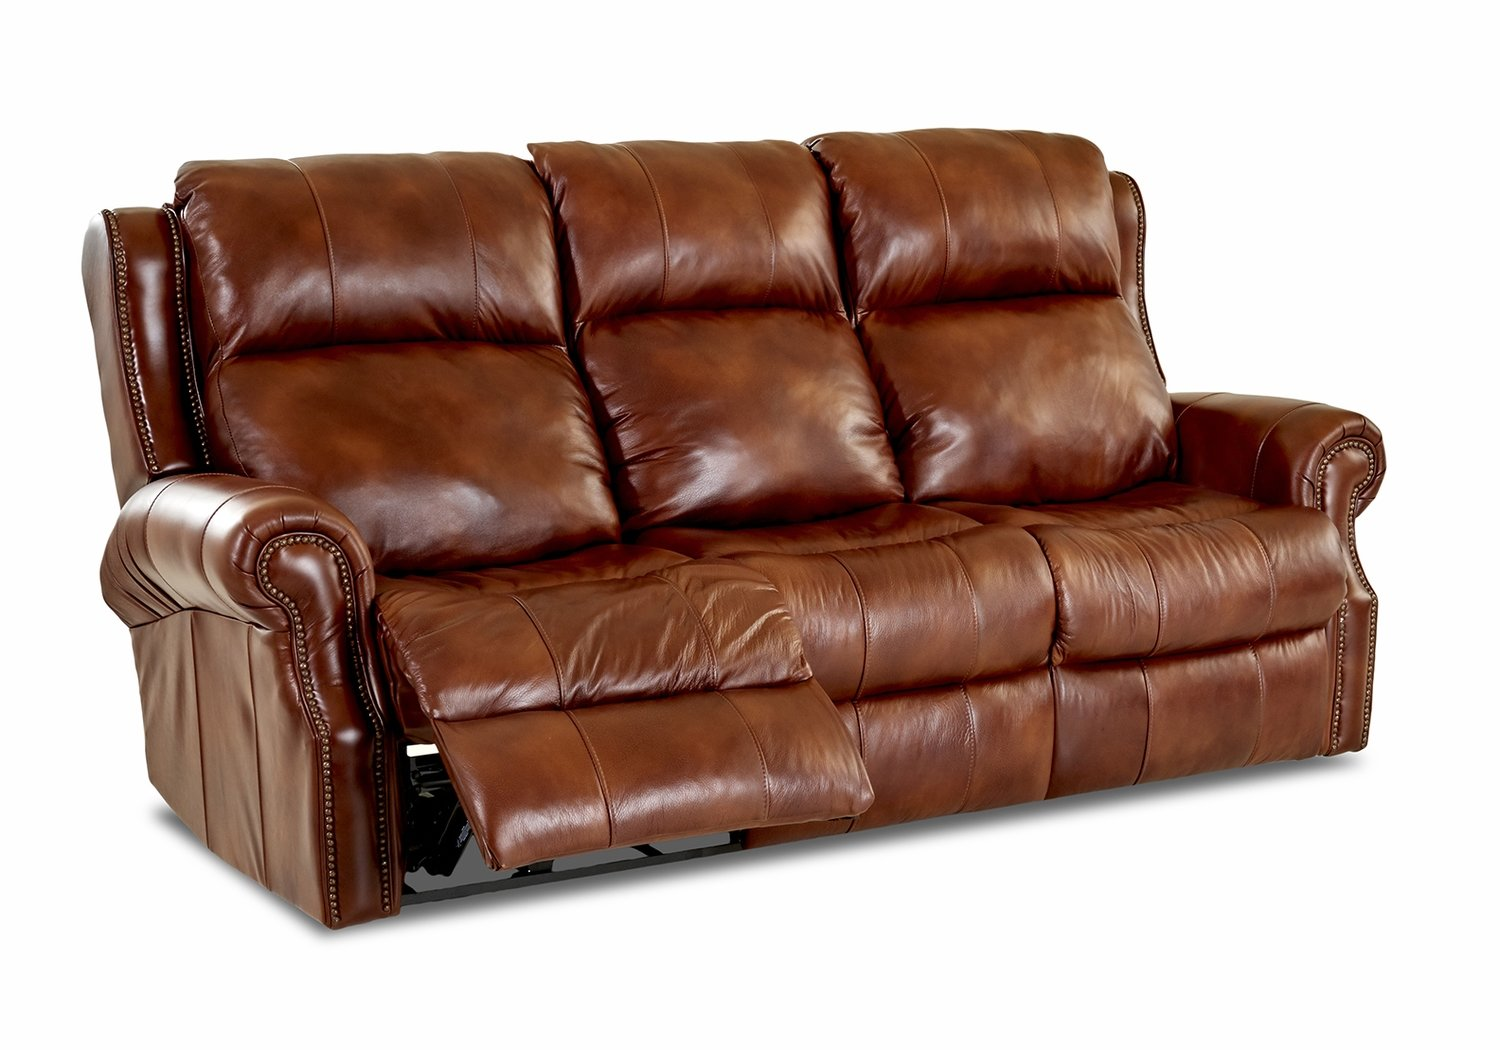 Blue Ridge 5.3 Power Reclining Sofa With Power Headrest